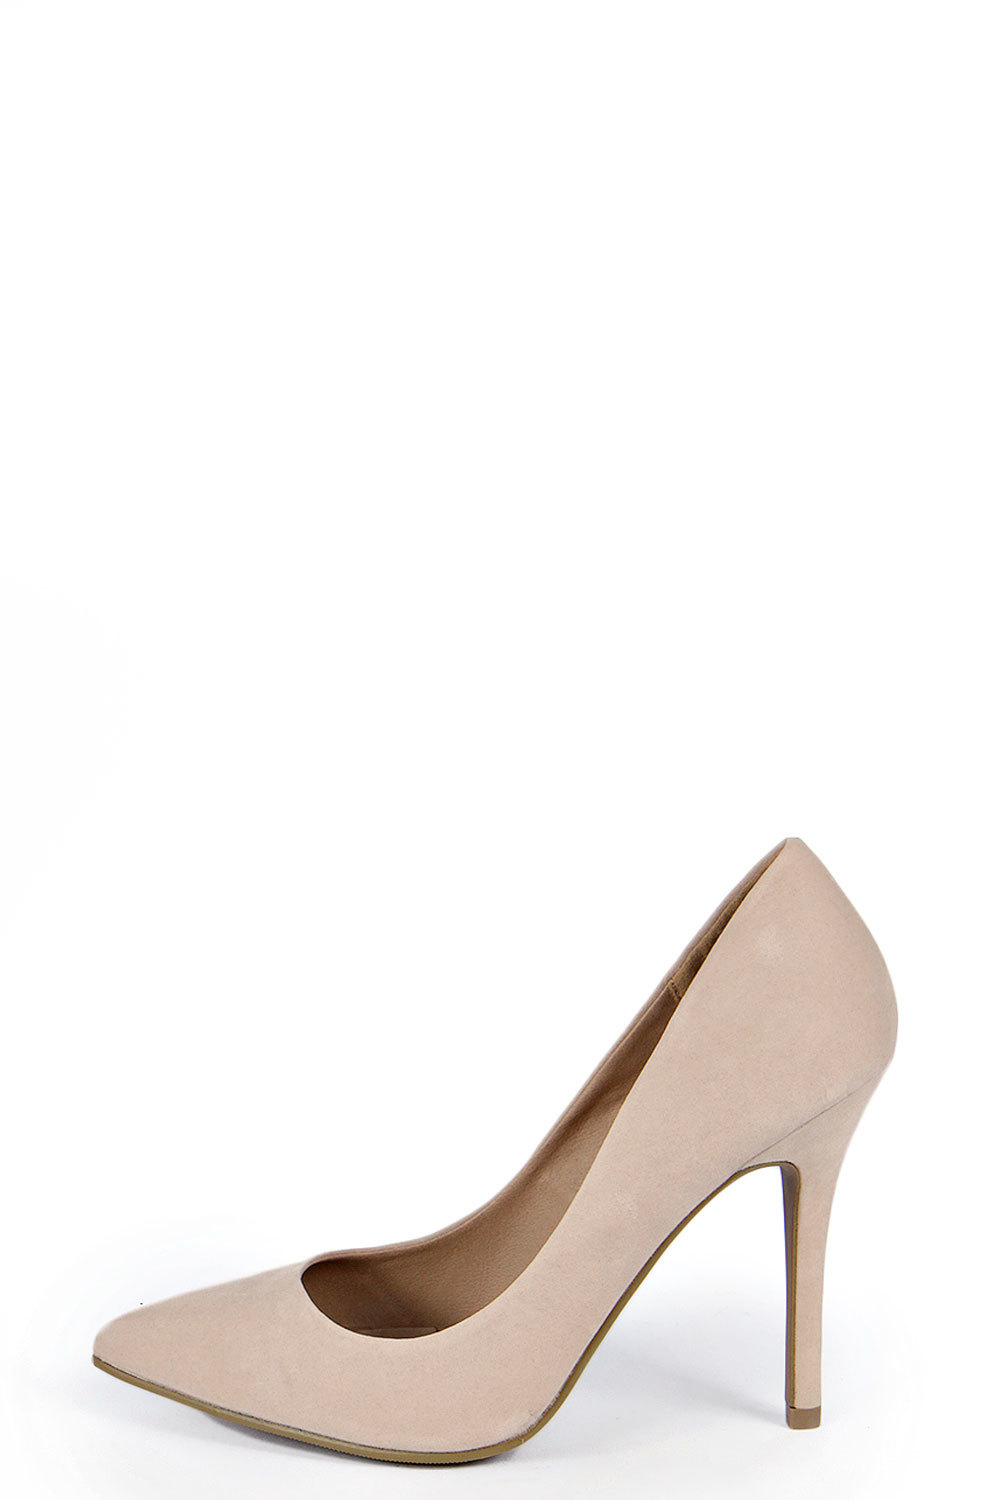 Pointed Court Heels Black - predominant colour: nude; occasions: evening, work, occasion, creative work; material: faux leather; heel height: high; heel: stiletto; toe: pointed toe; style: courts; finish: plain; pattern: plain; season: a/w 2014